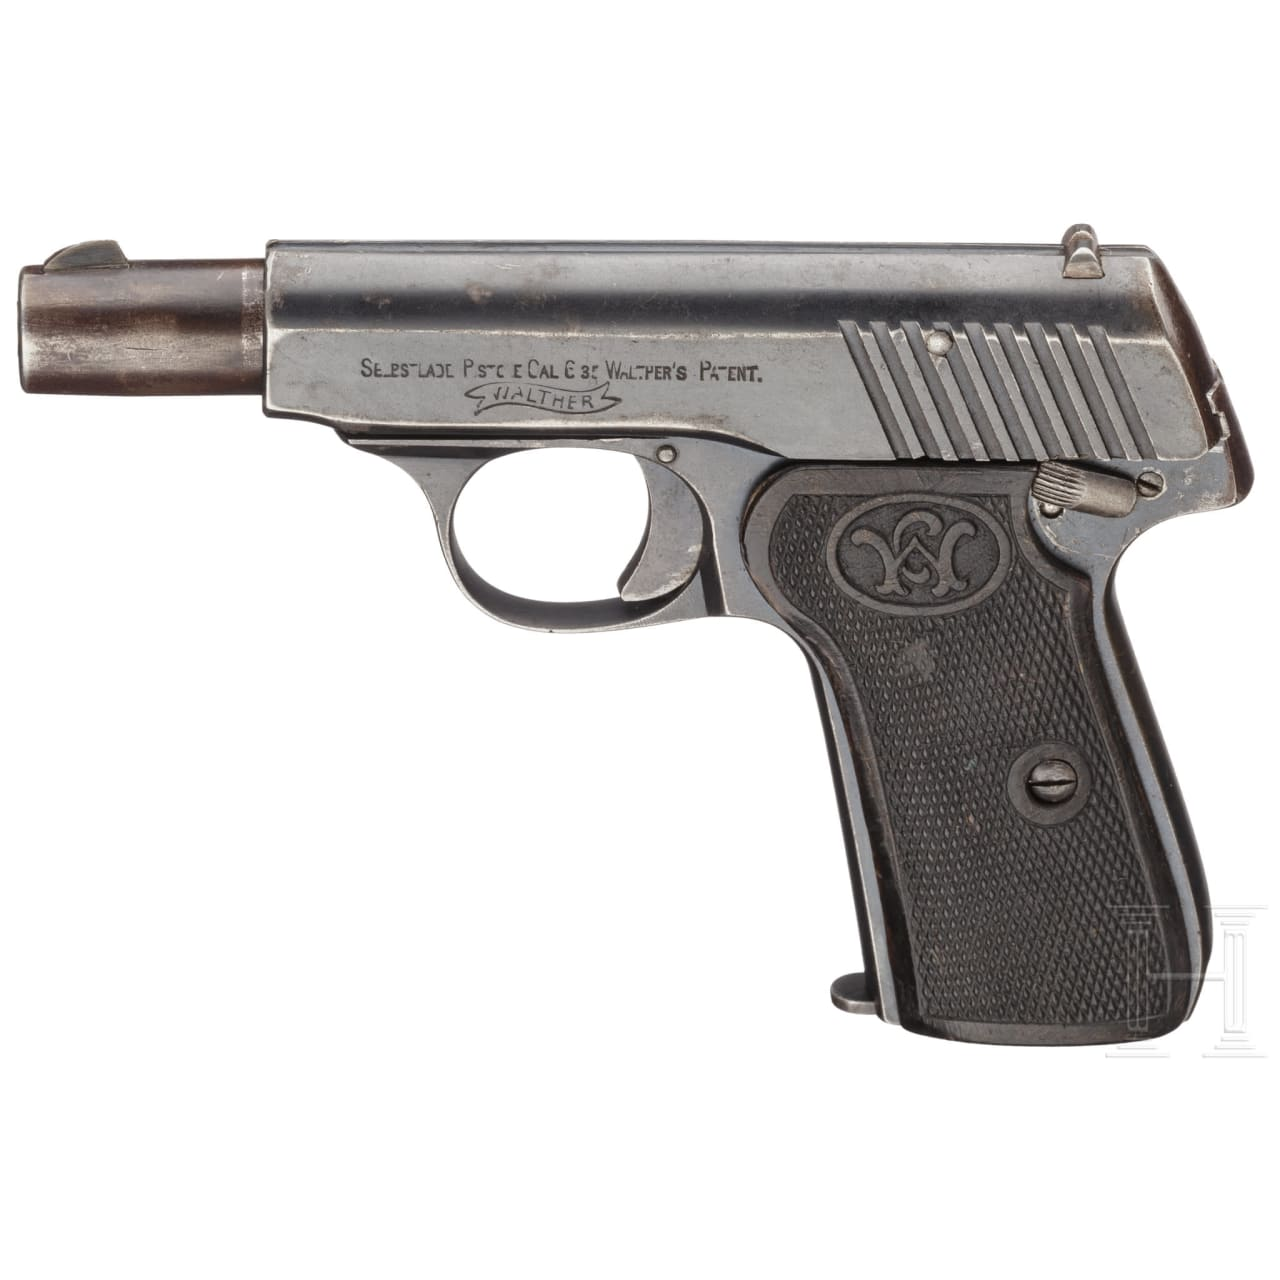 A Walther M 7, 1st version